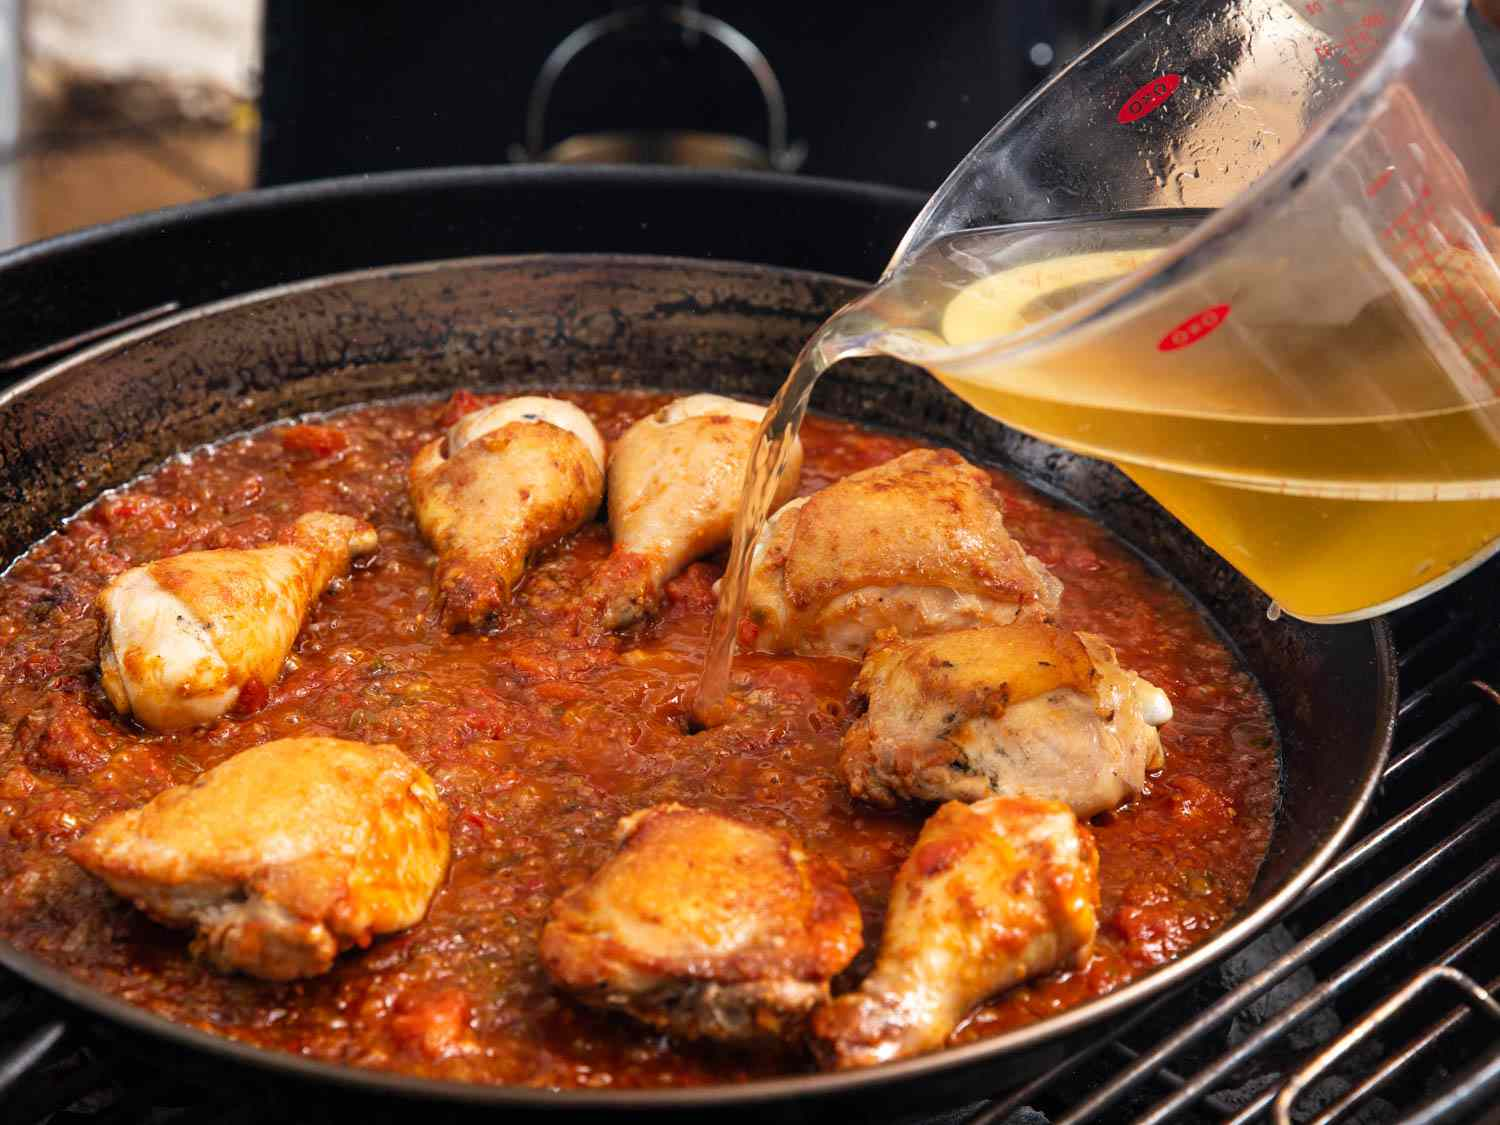 20190618-grilled-paella-vicky-wasik-24